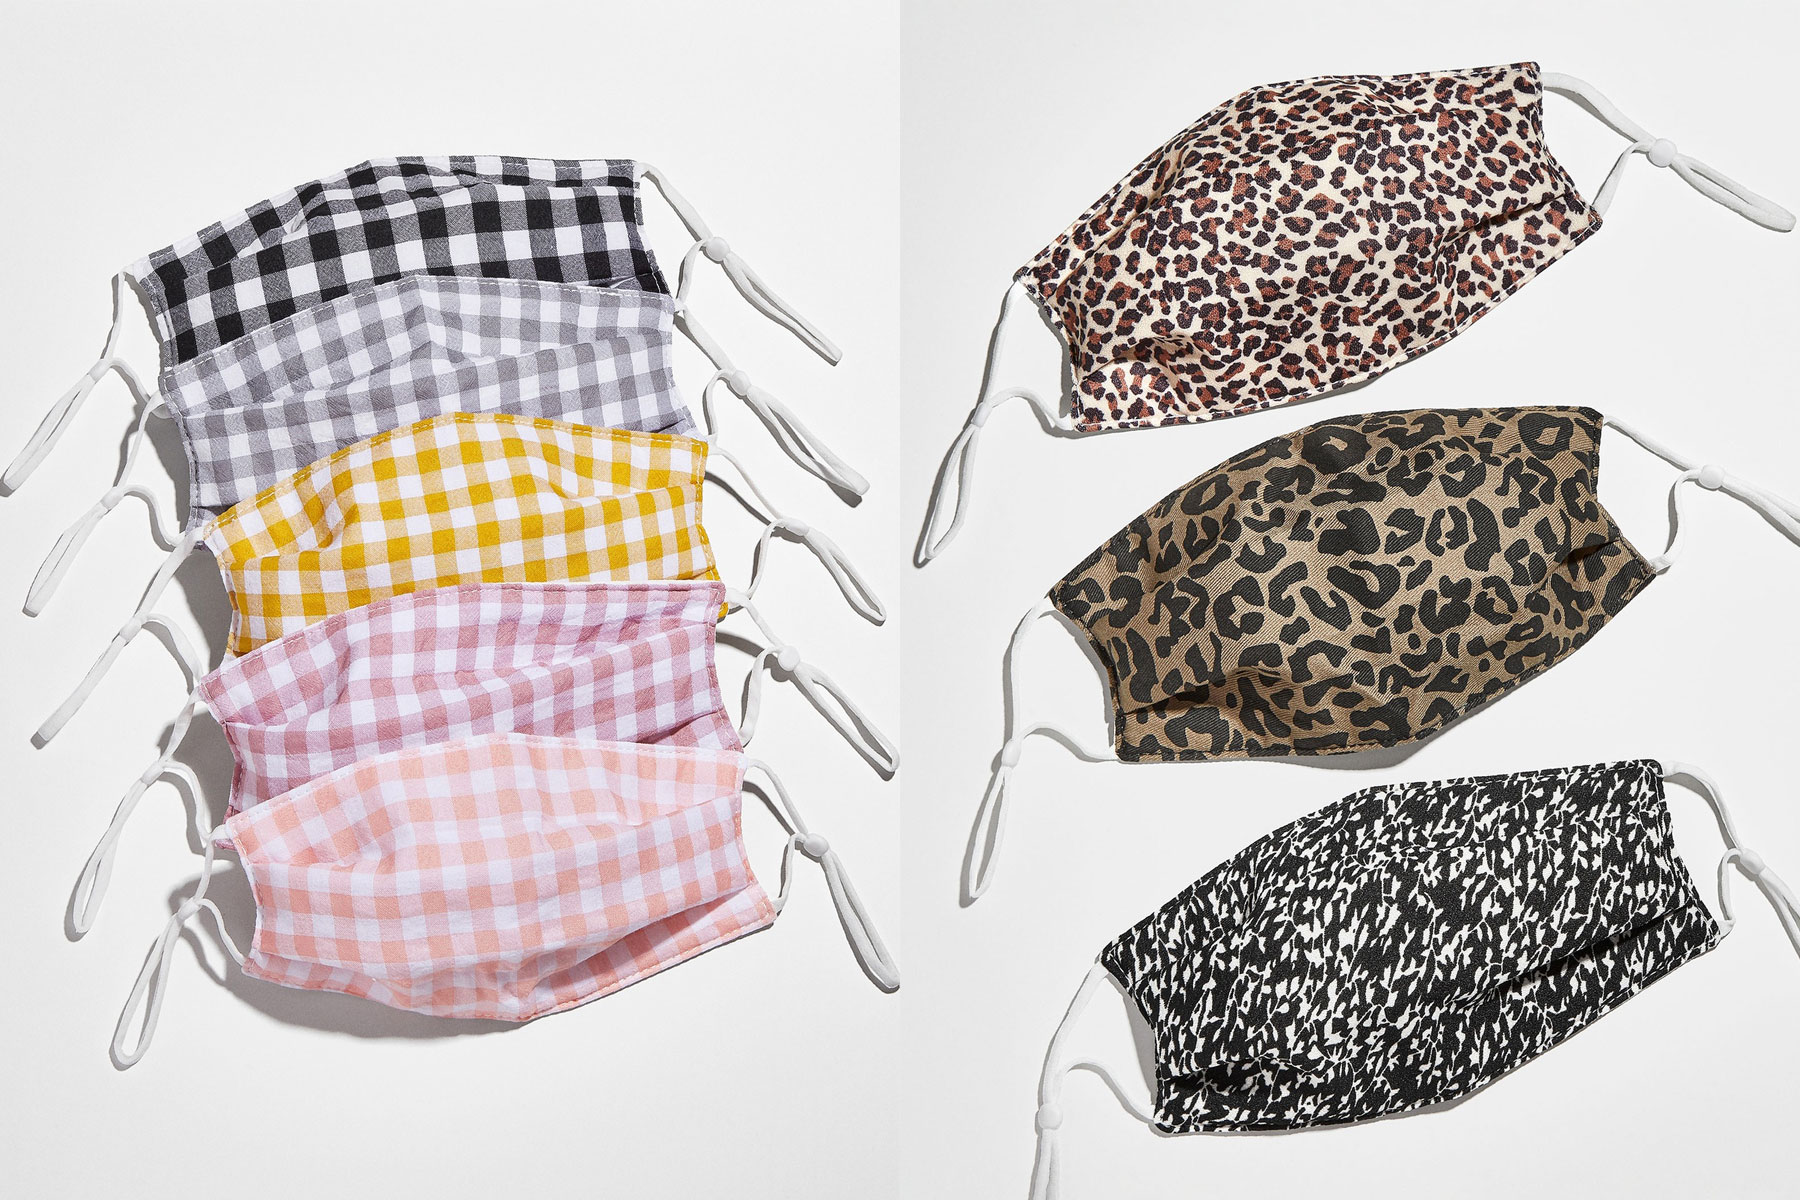 Variety of patterned face masks